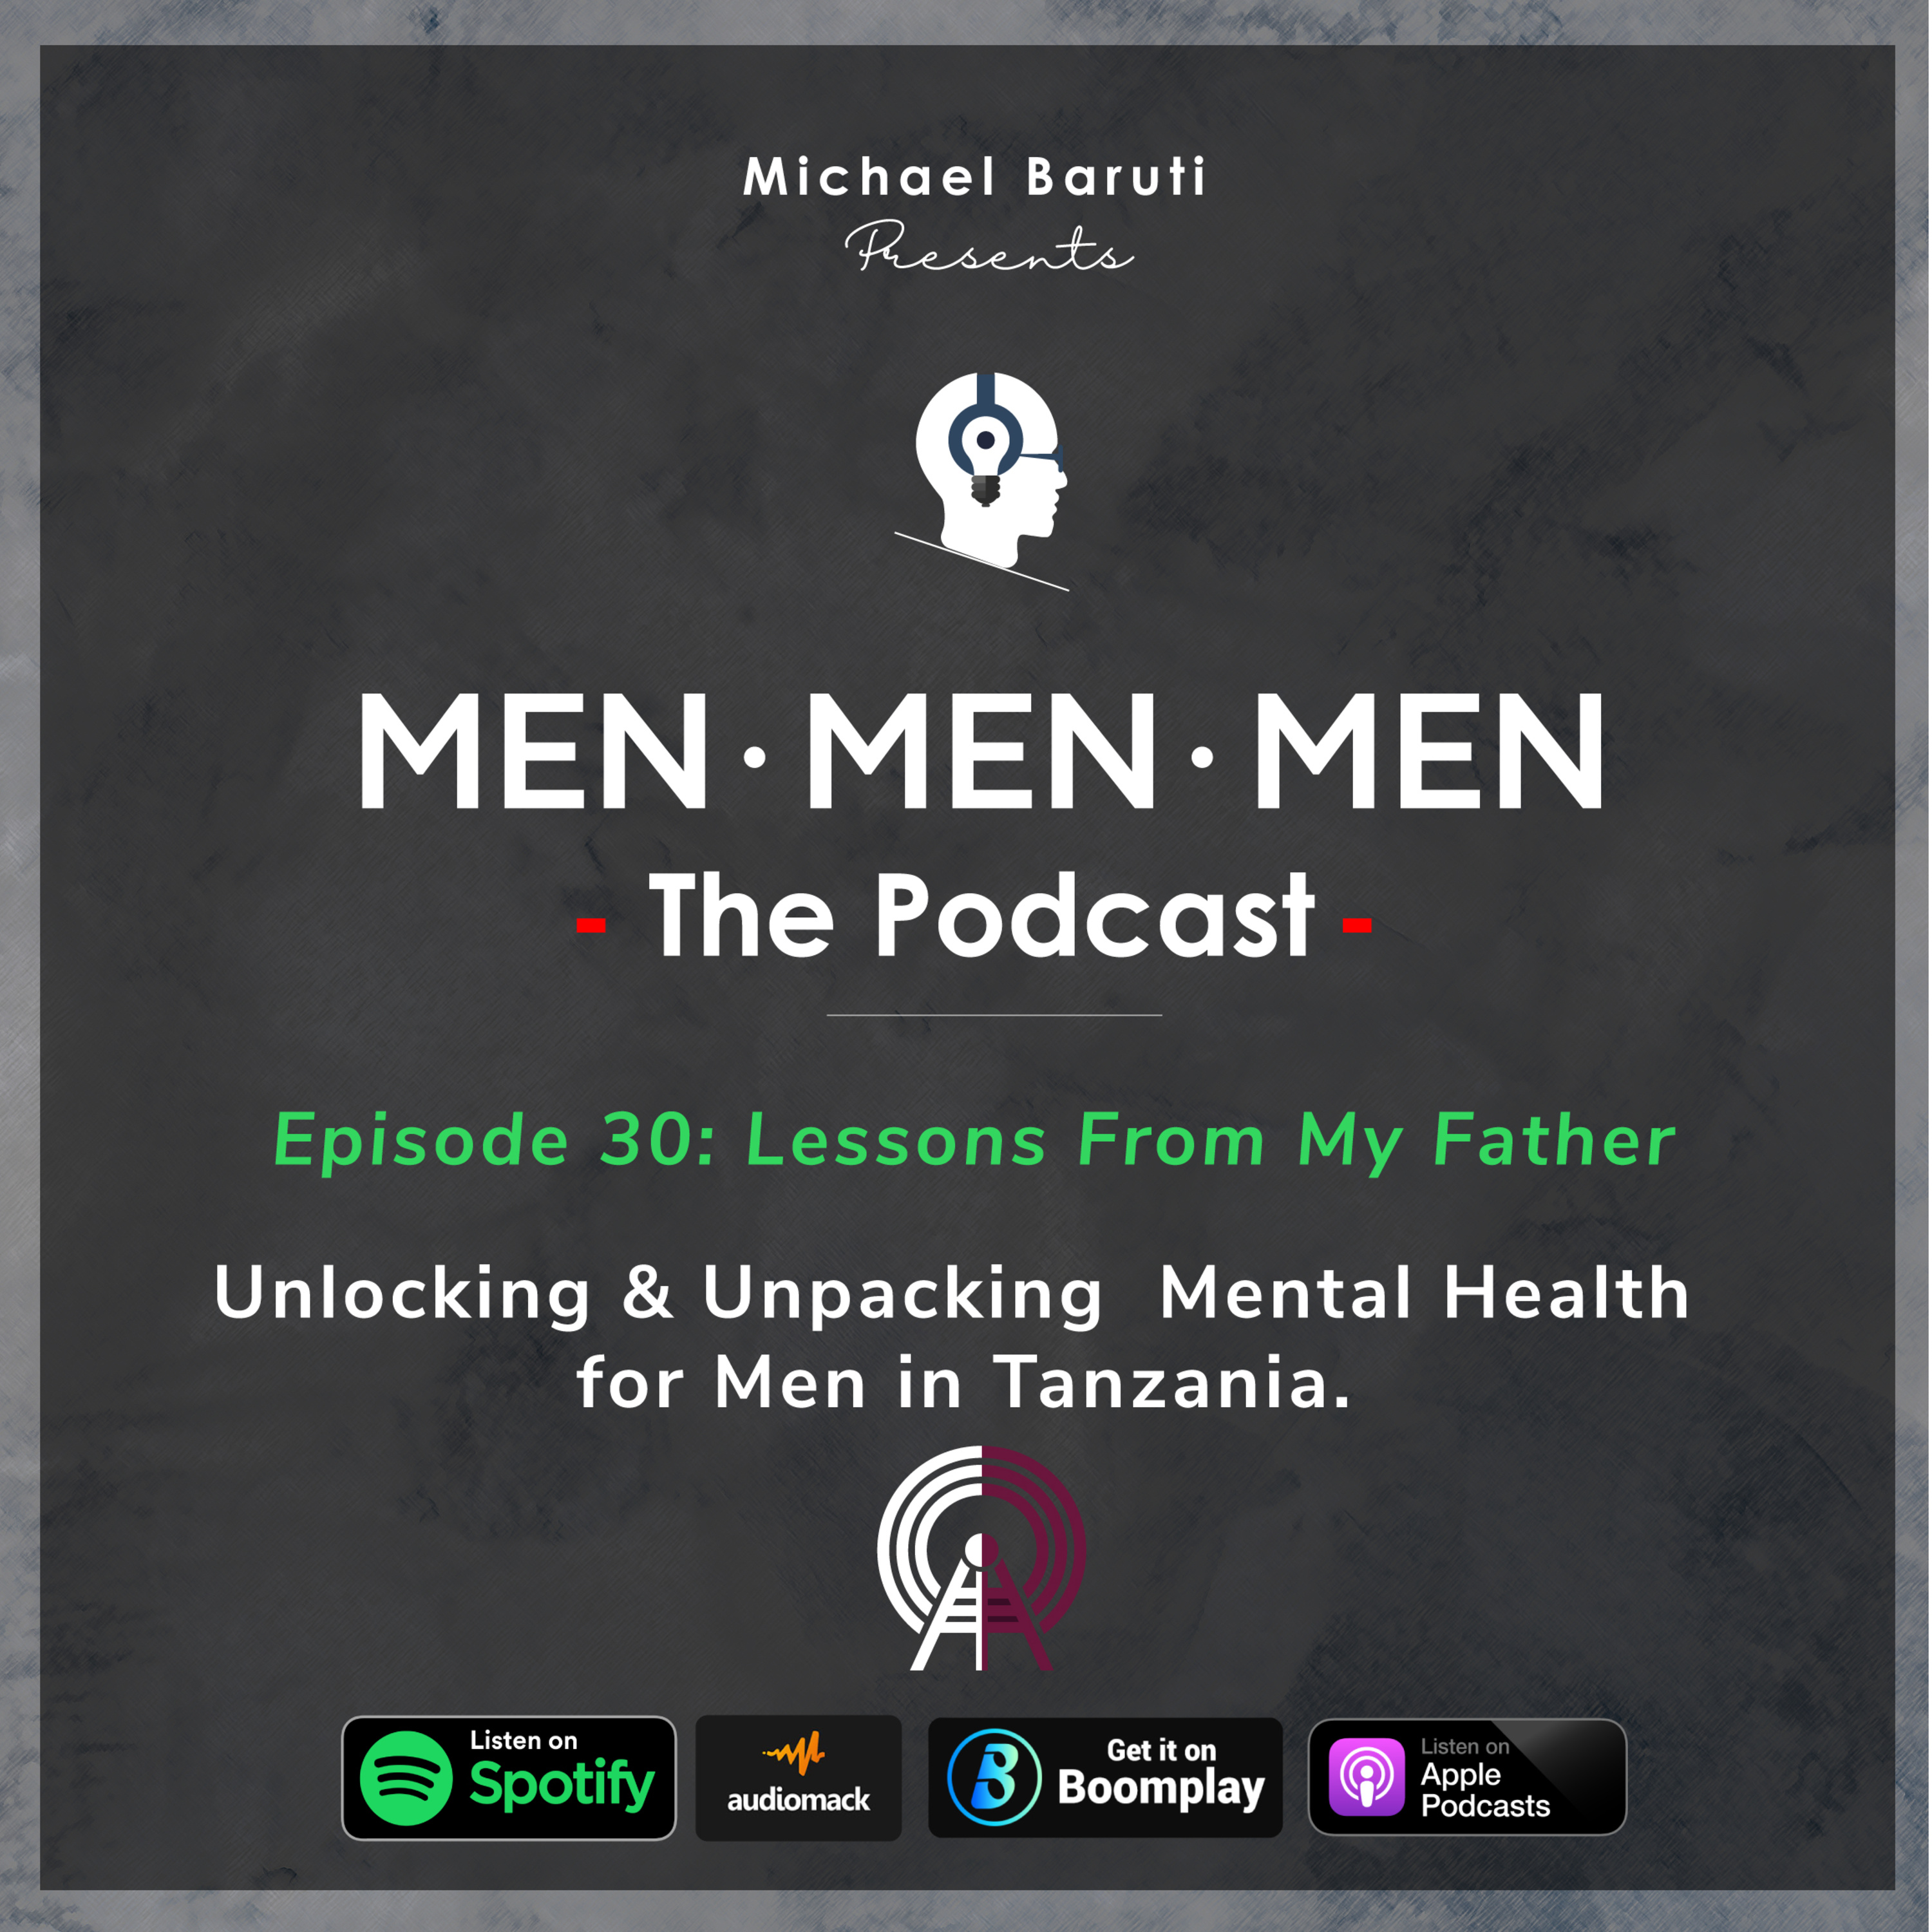 Men The Podcast - Ep 30 - Lessons From My Father